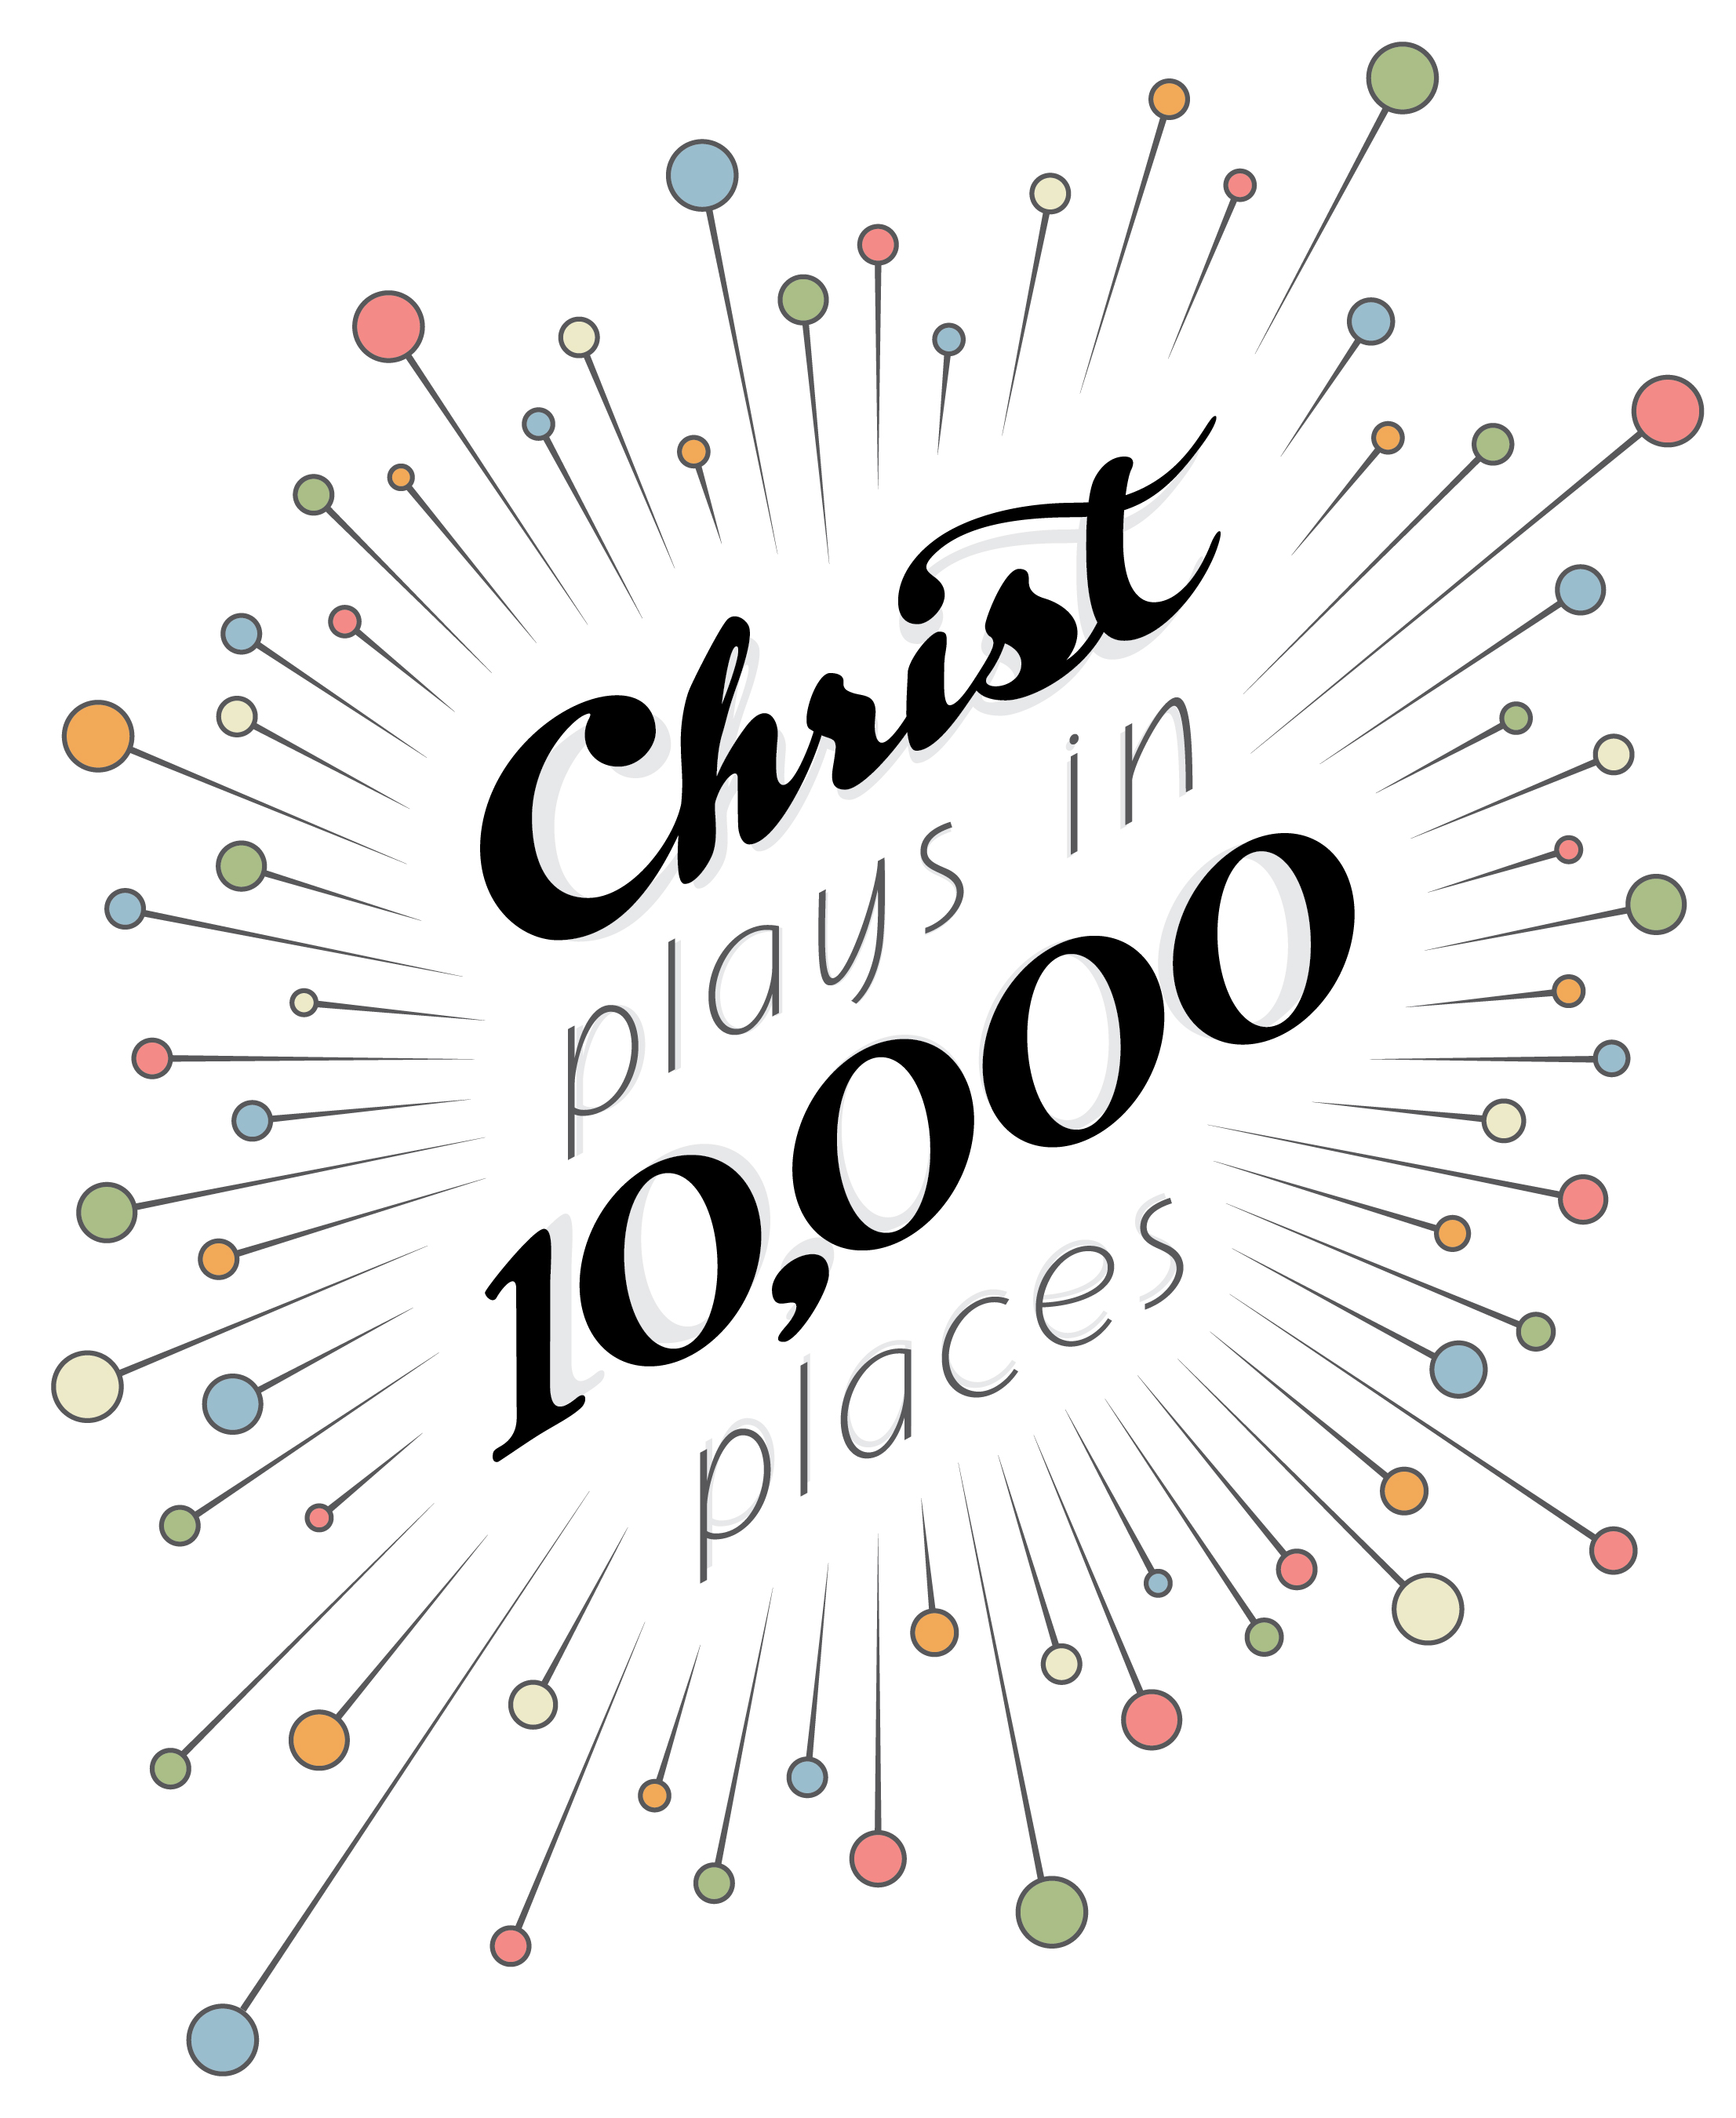 Christ plays in 10,000 places hand lettering